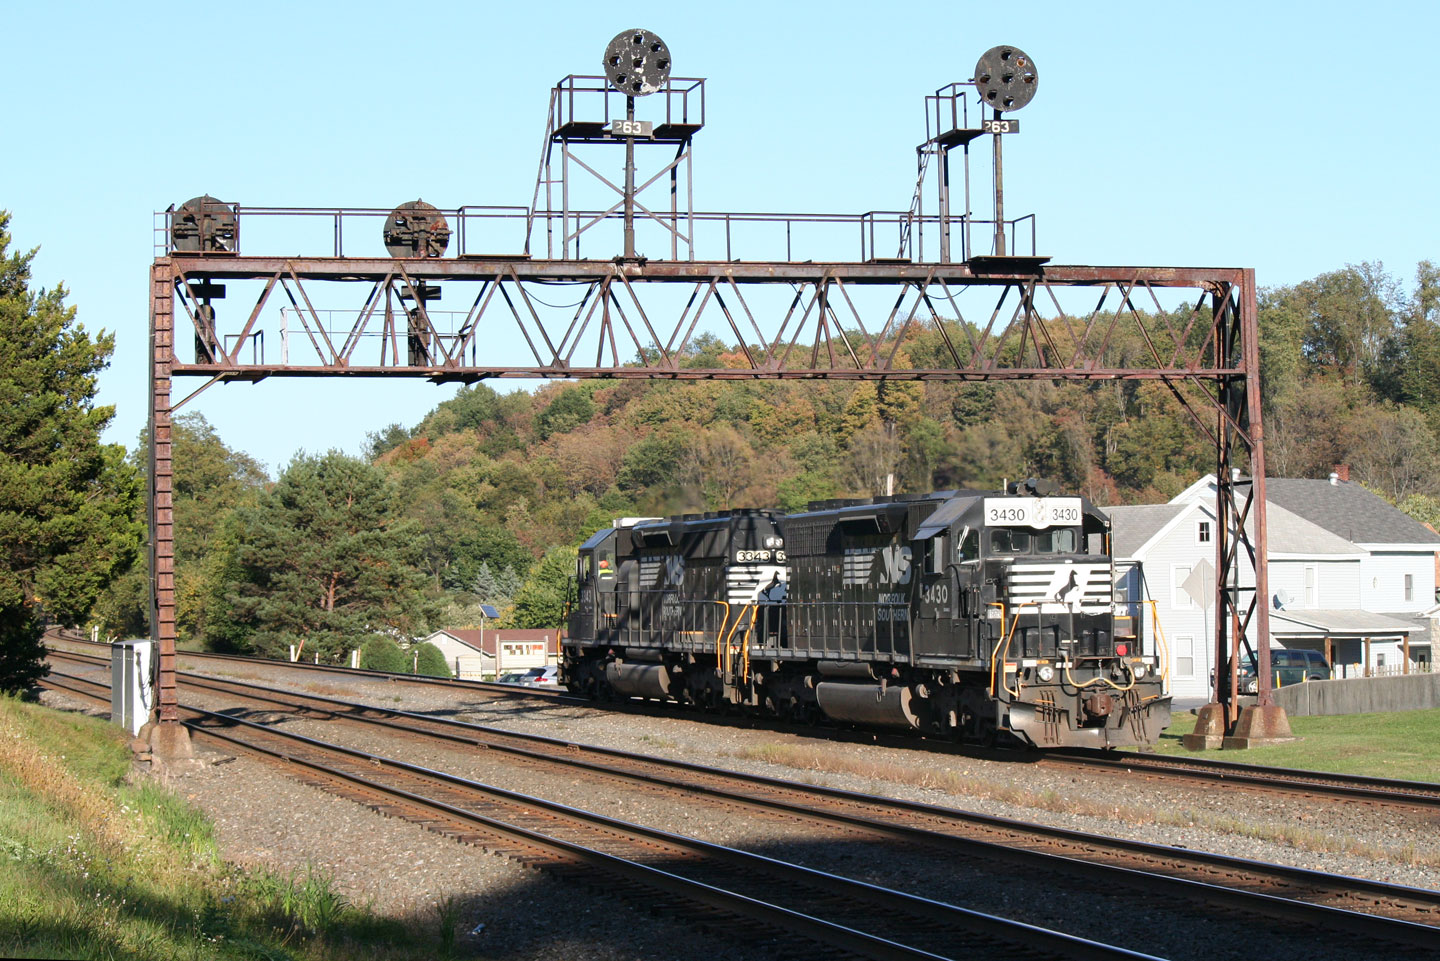 A pair of SD40-2s return east past the signals at Summerhill. We'd see these units again, under much different circumstances, at this same spot the next day.